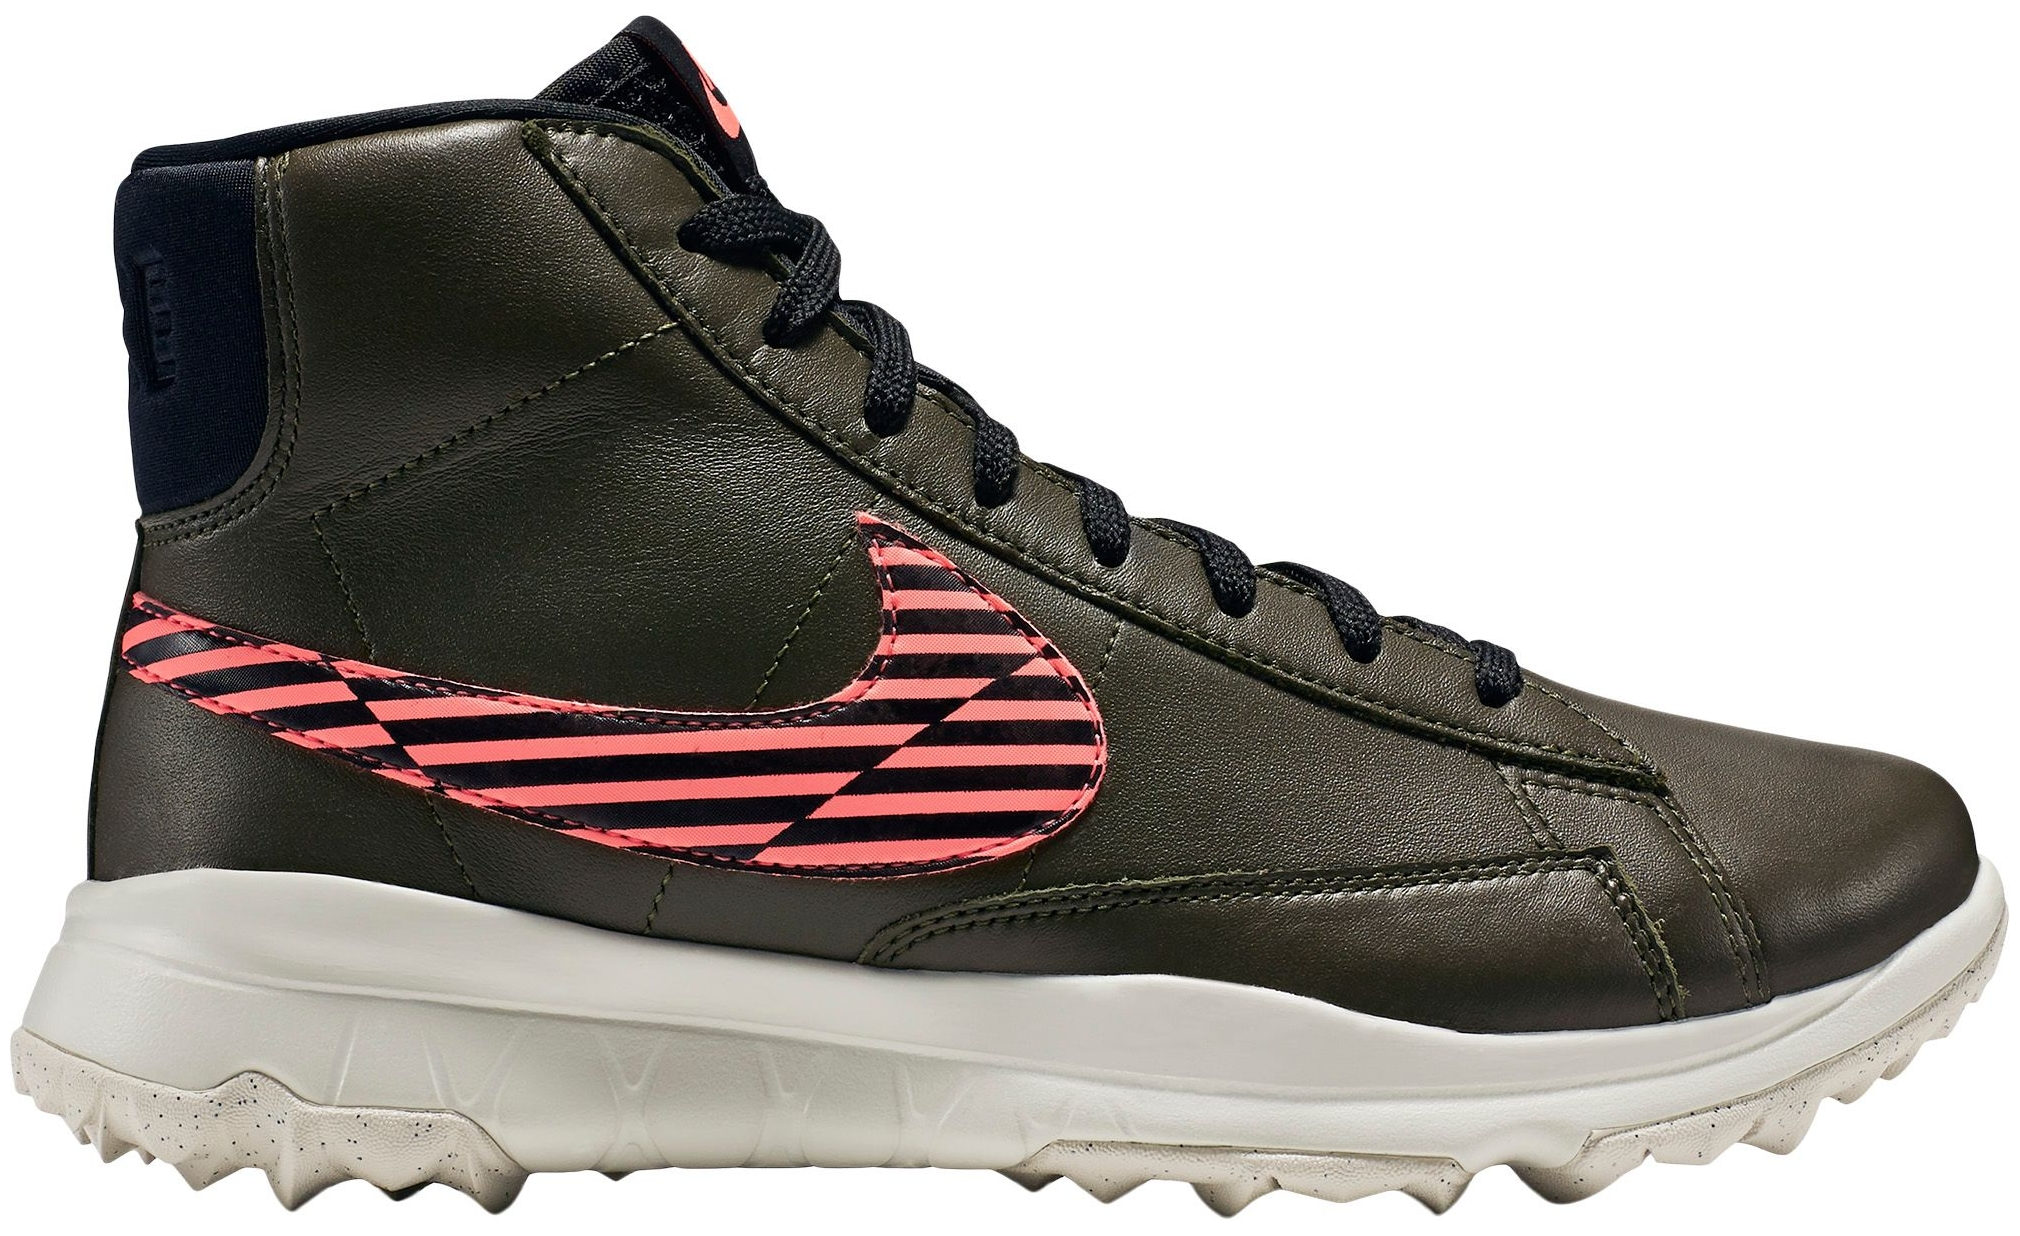 Nike Women's Blazer Golf Shoes (Cargo Khaki Black, 6) by Nike